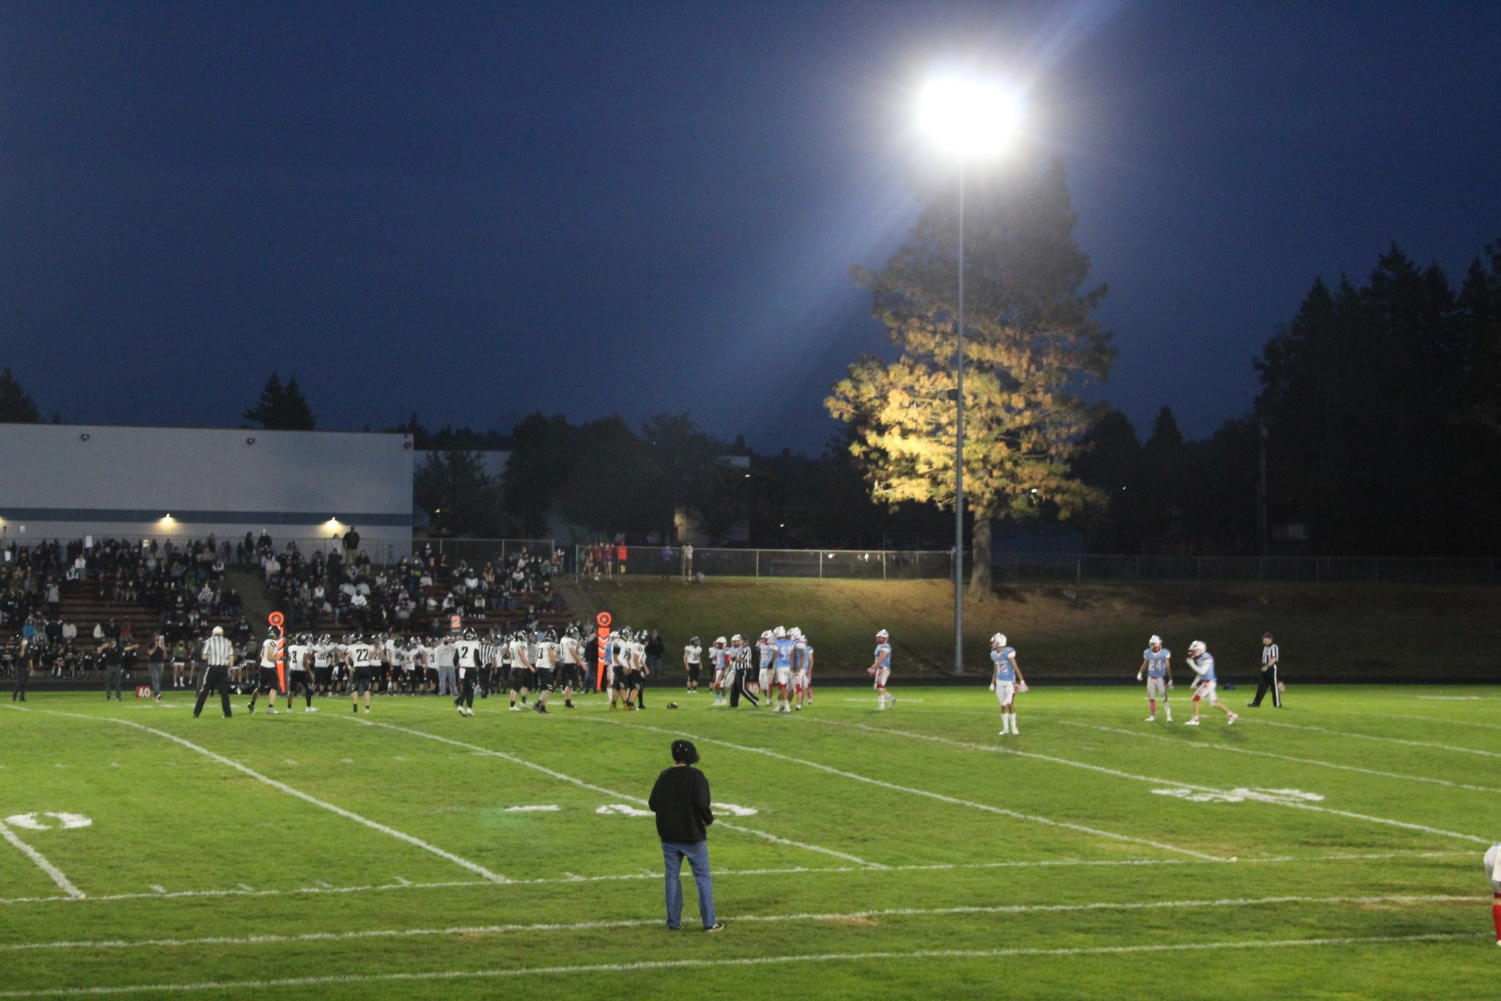 CHS Hosts Homecoming Game Amidst Cancellations